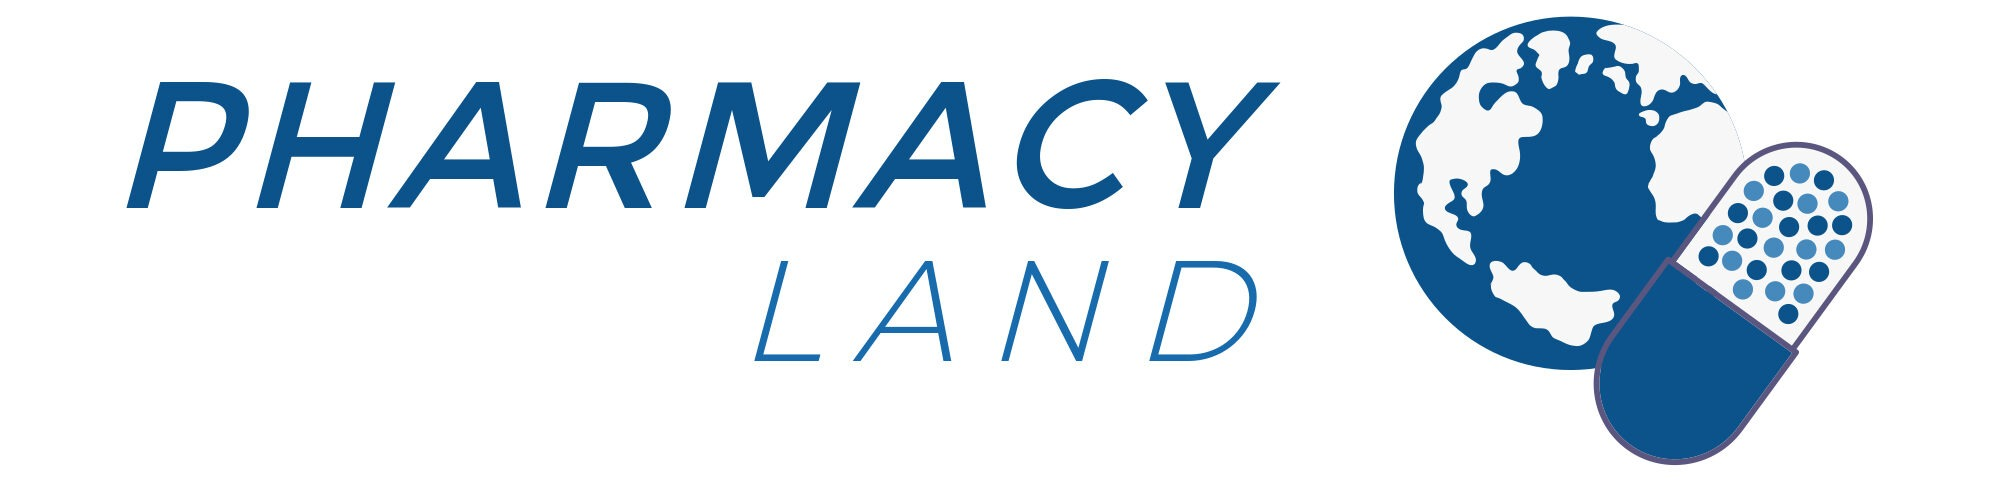 Pharmacy Land